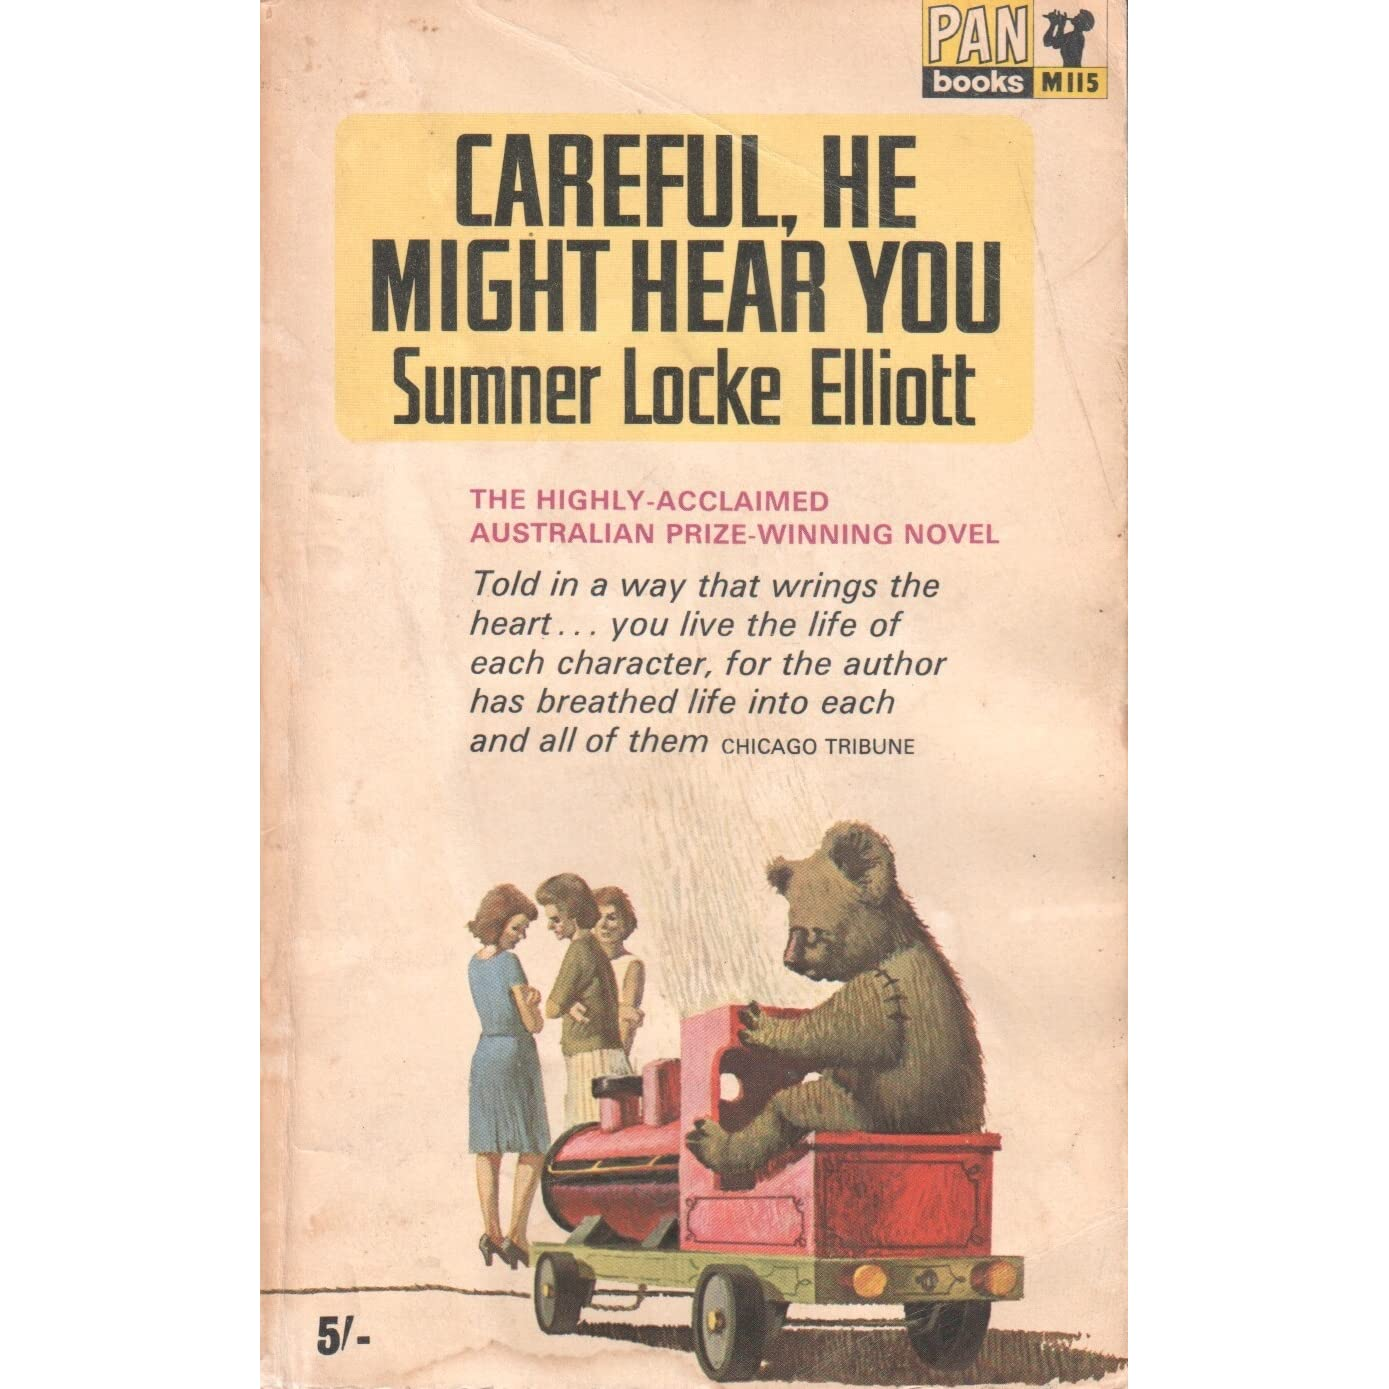 an analysis of personal identity in careful he might hear you by sumner locke elliot In search for personal identity in careful he might hear you by sumner locke elliot  an analysis of the compromise of missouri and its role in the civil war.